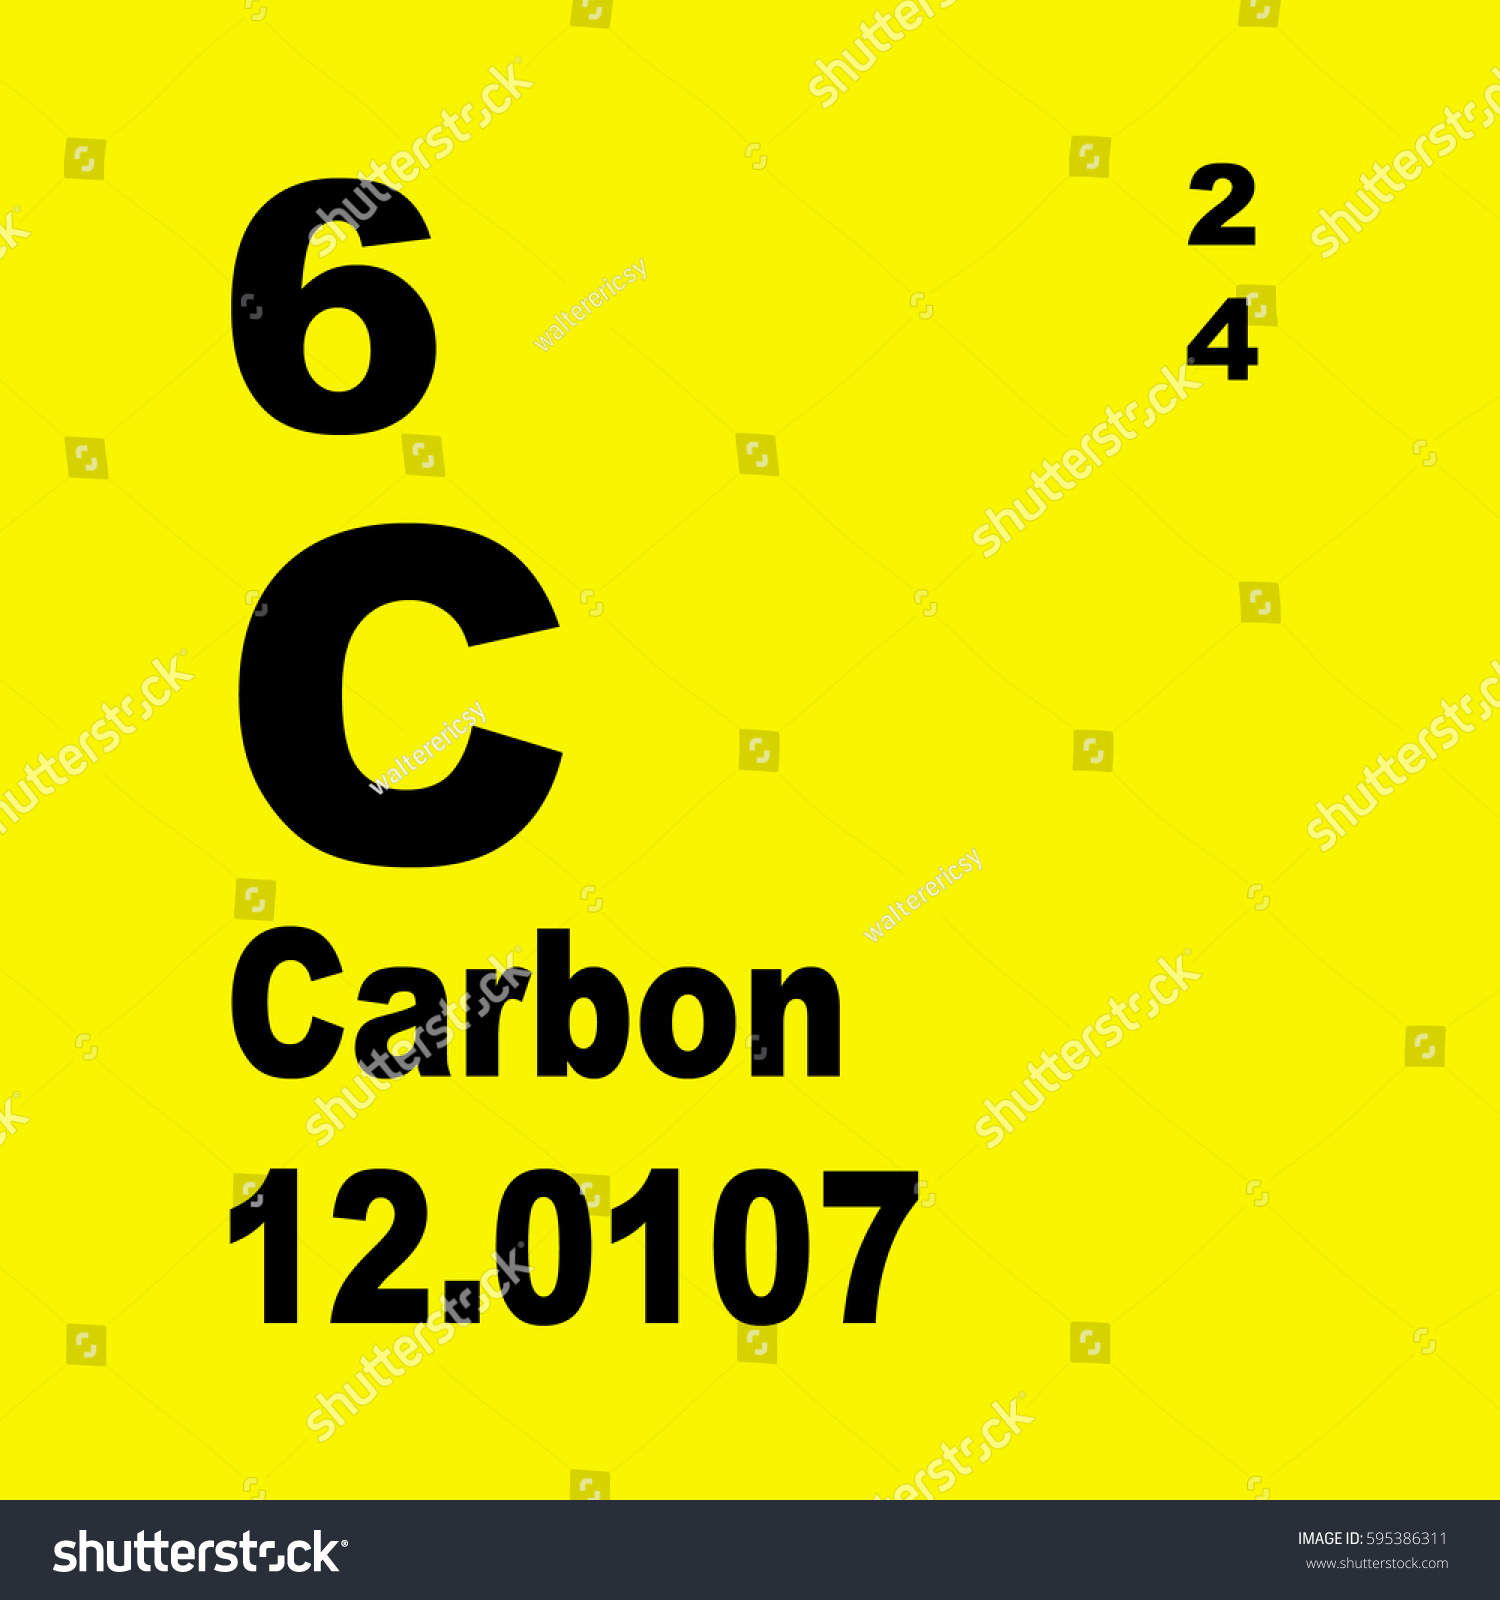 Periodic table of elements carbon gallery periodic table images carbon in periodic table images periodic table images periodic table of elements carbon choice image periodic gamestrikefo Images